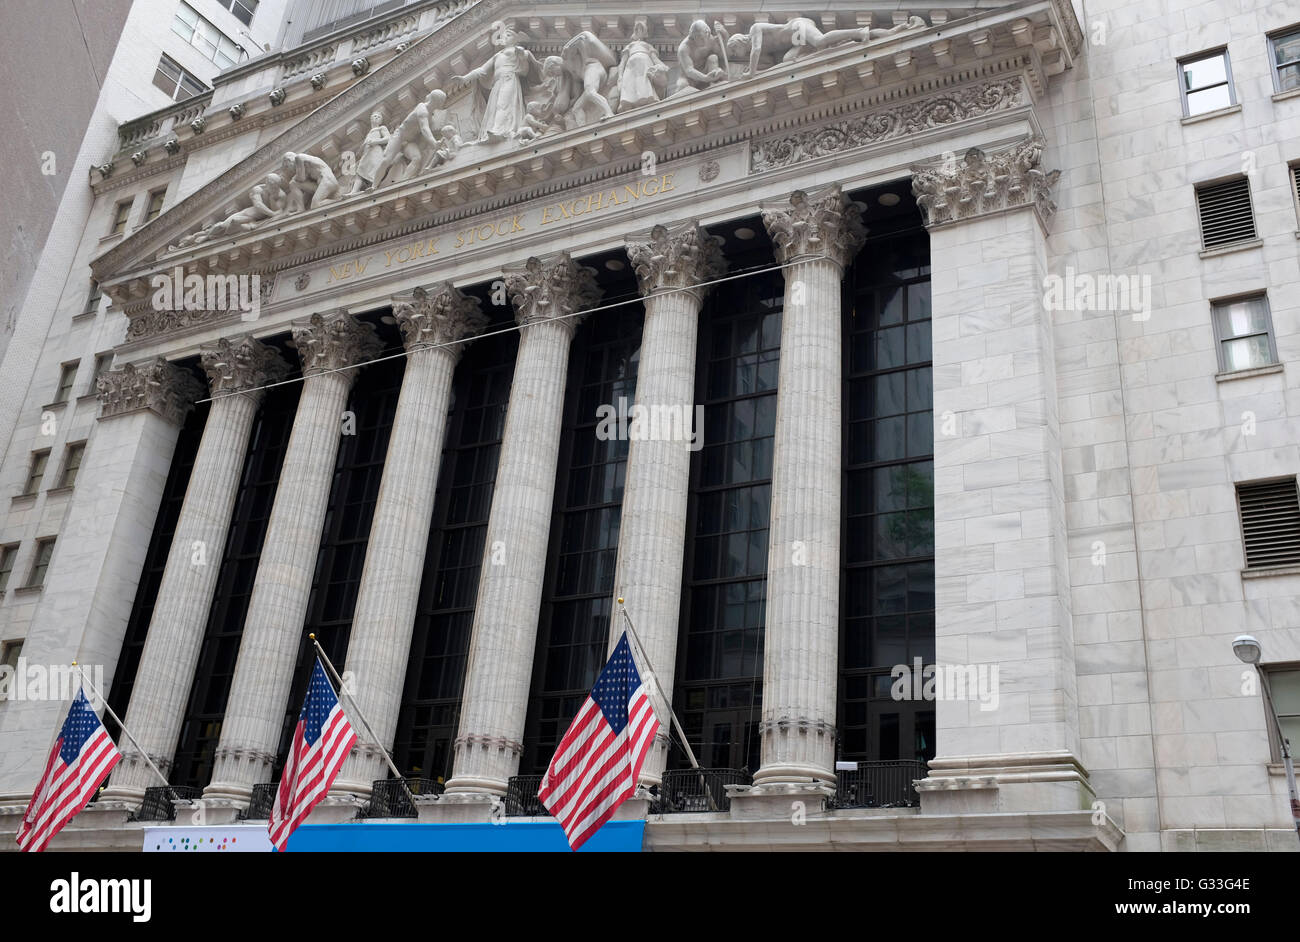 Bourse de New York, New York City, USA Photo Stock